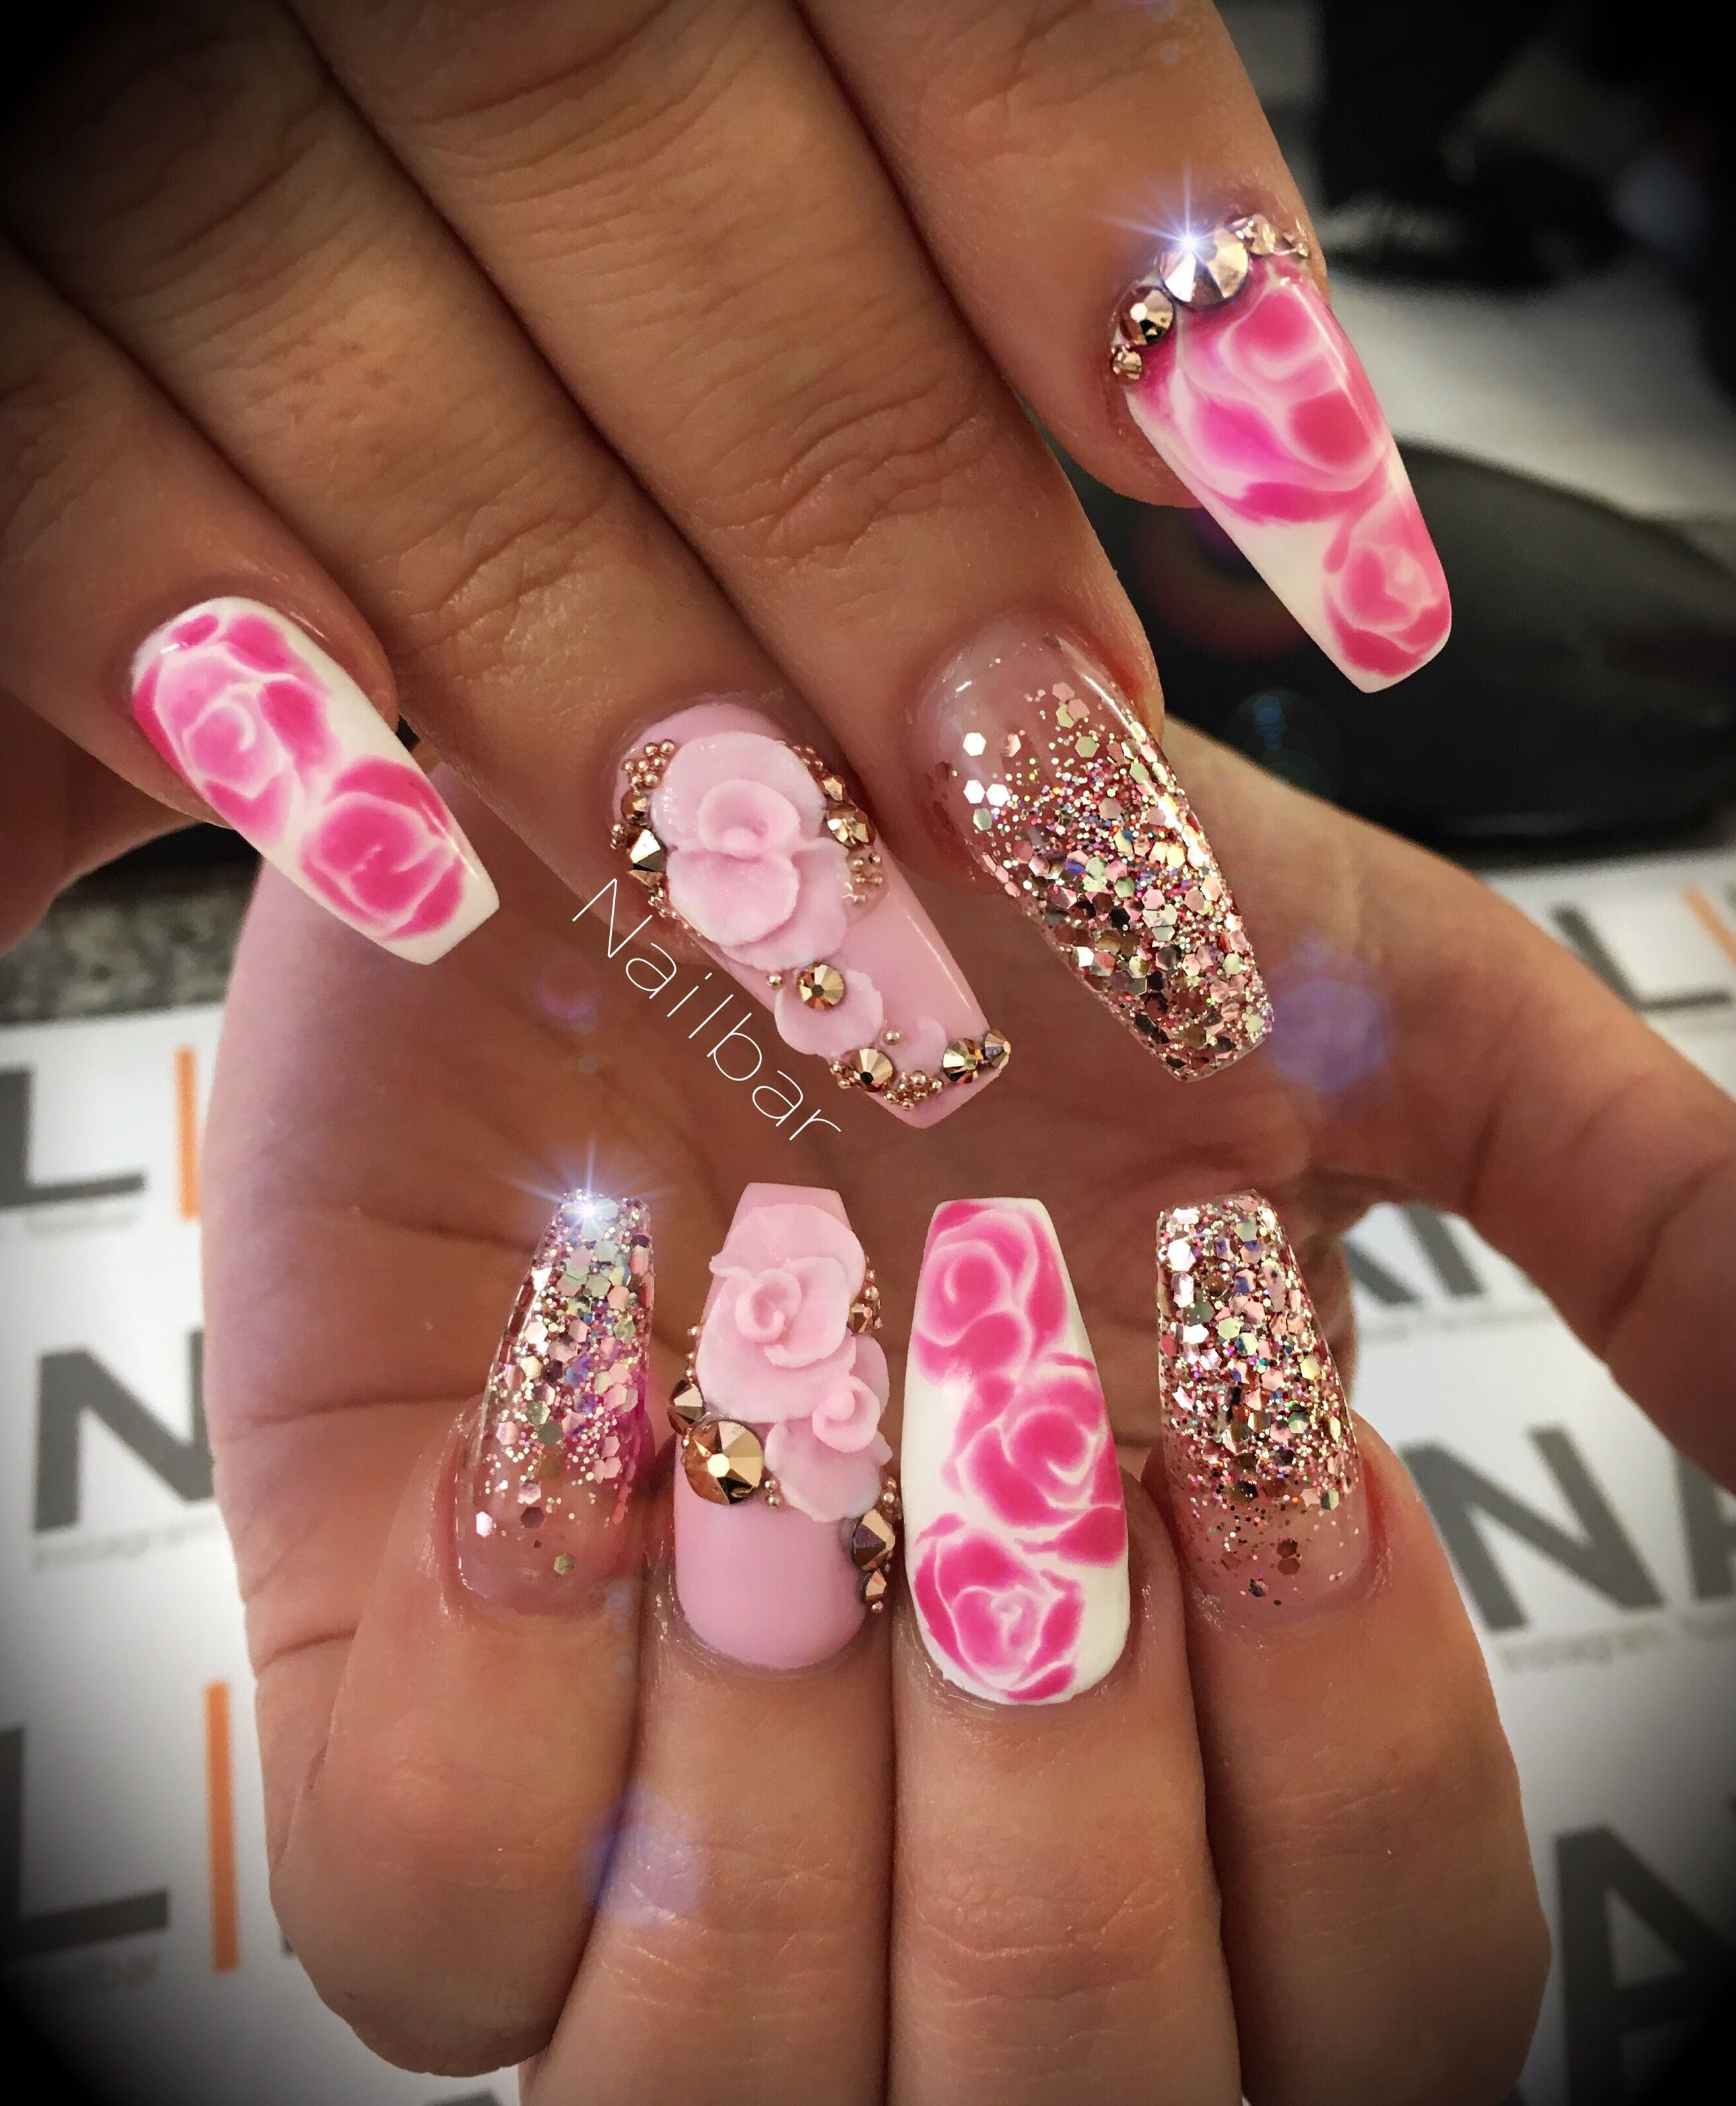 Coffin nail shape with glitter and 3d nail art  a402270b4a1b